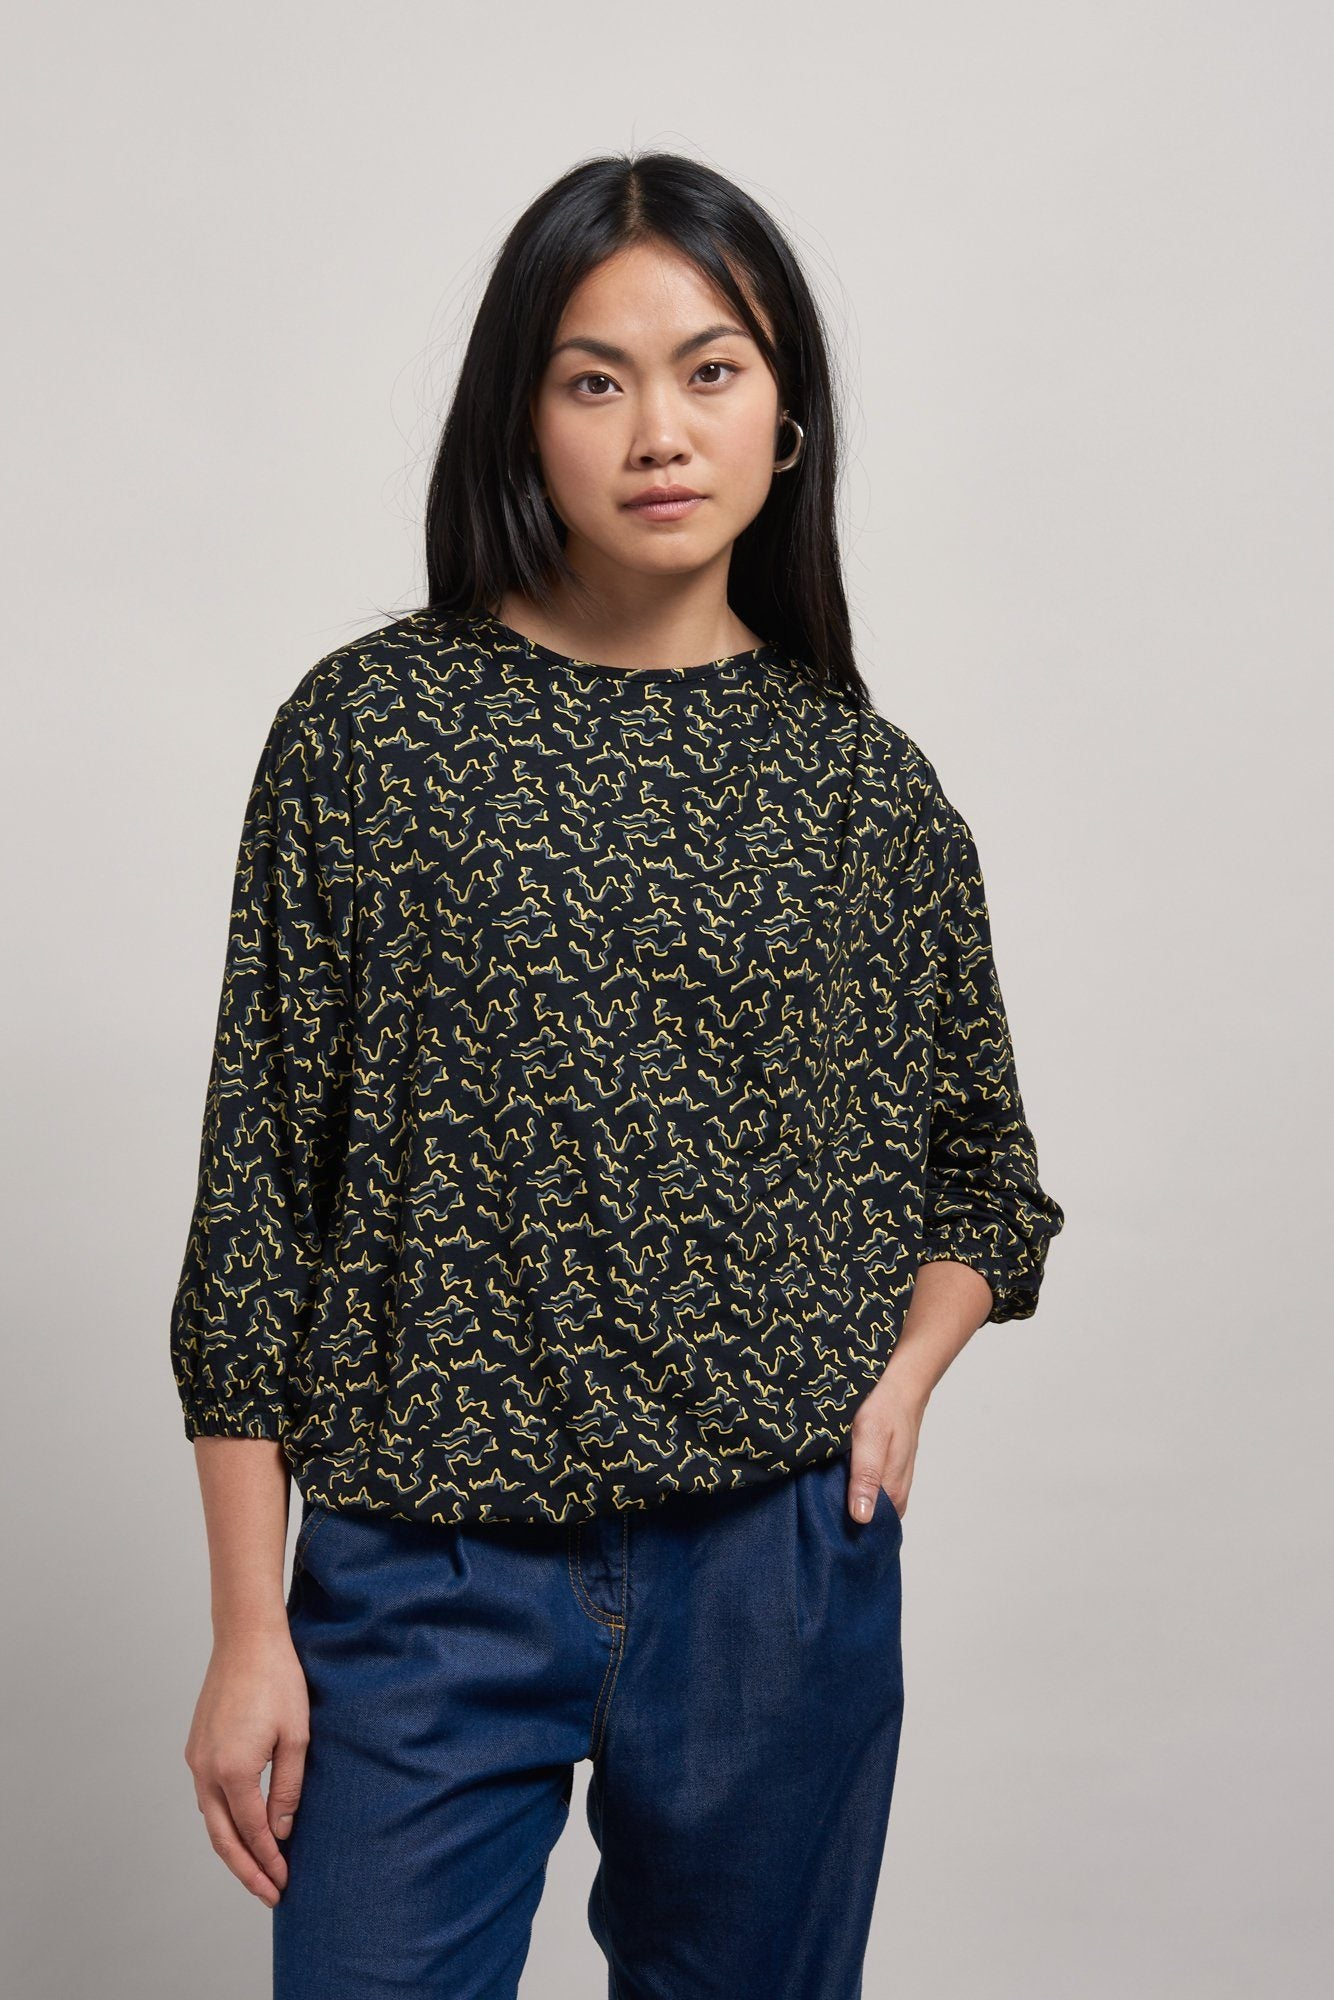 Top - DRIFT Bamboo Drape Print Top